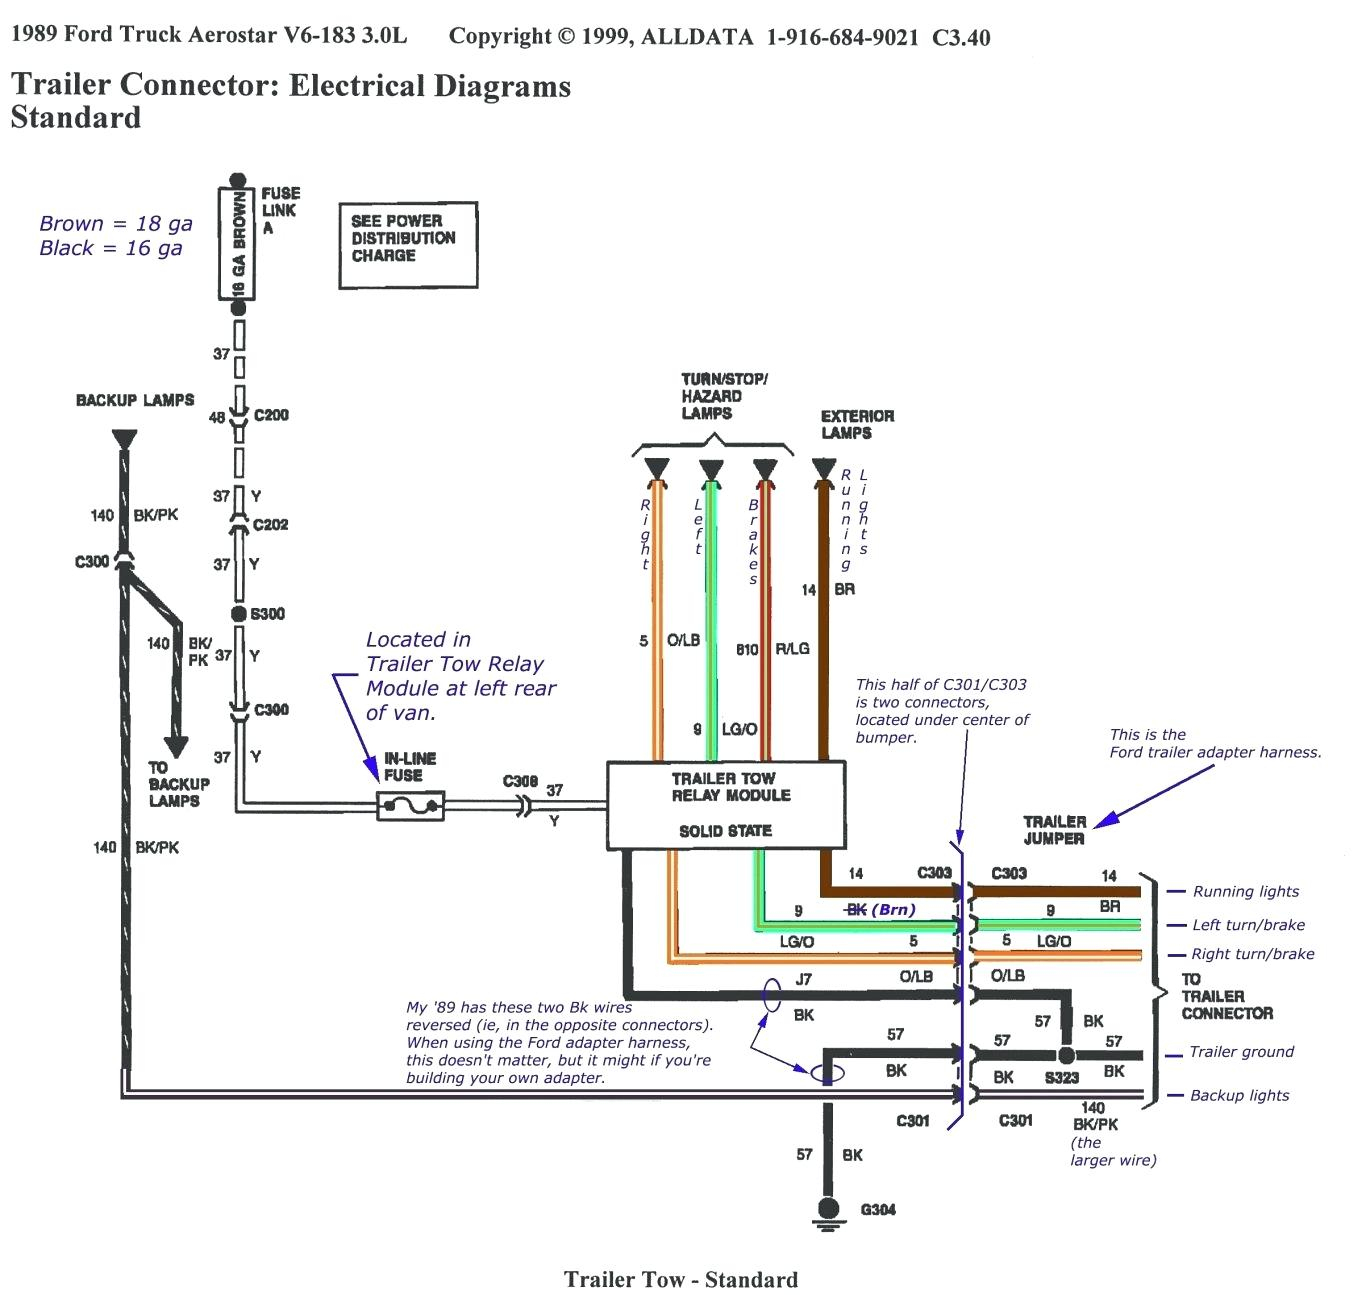 Hampton Bay Capacitor Wiring Diagram - Great Installation Of Wiring - Hampton Bay Ceiling Fan Switch Wiring Diagram